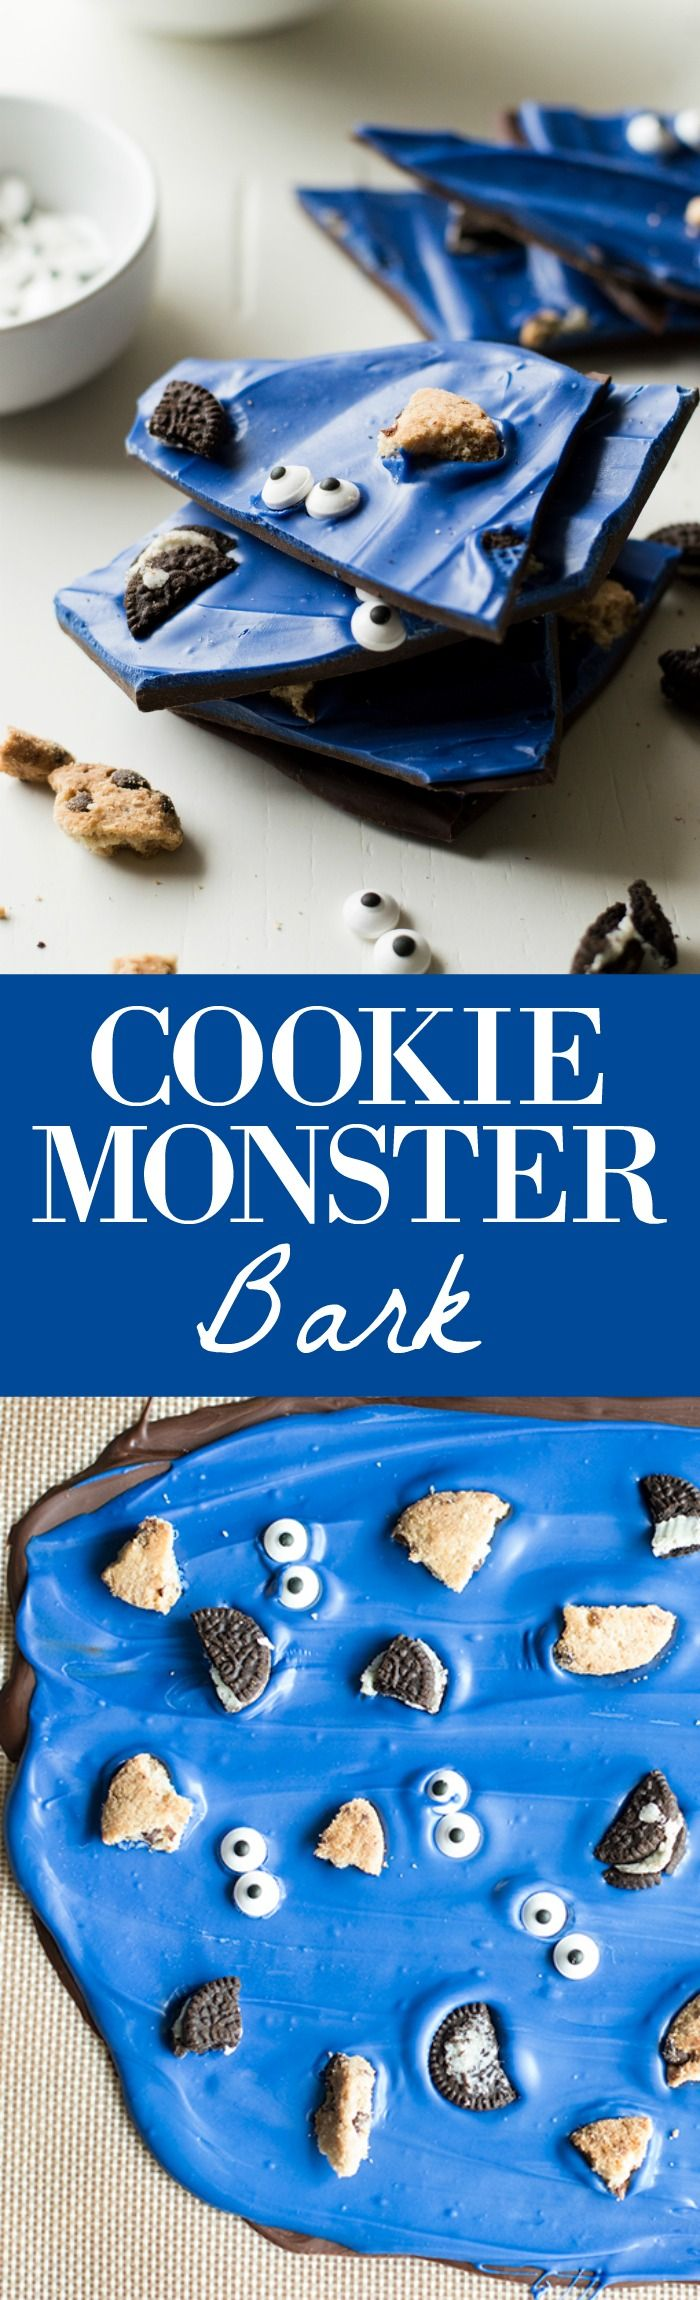 Cookie monster original cookie recipe